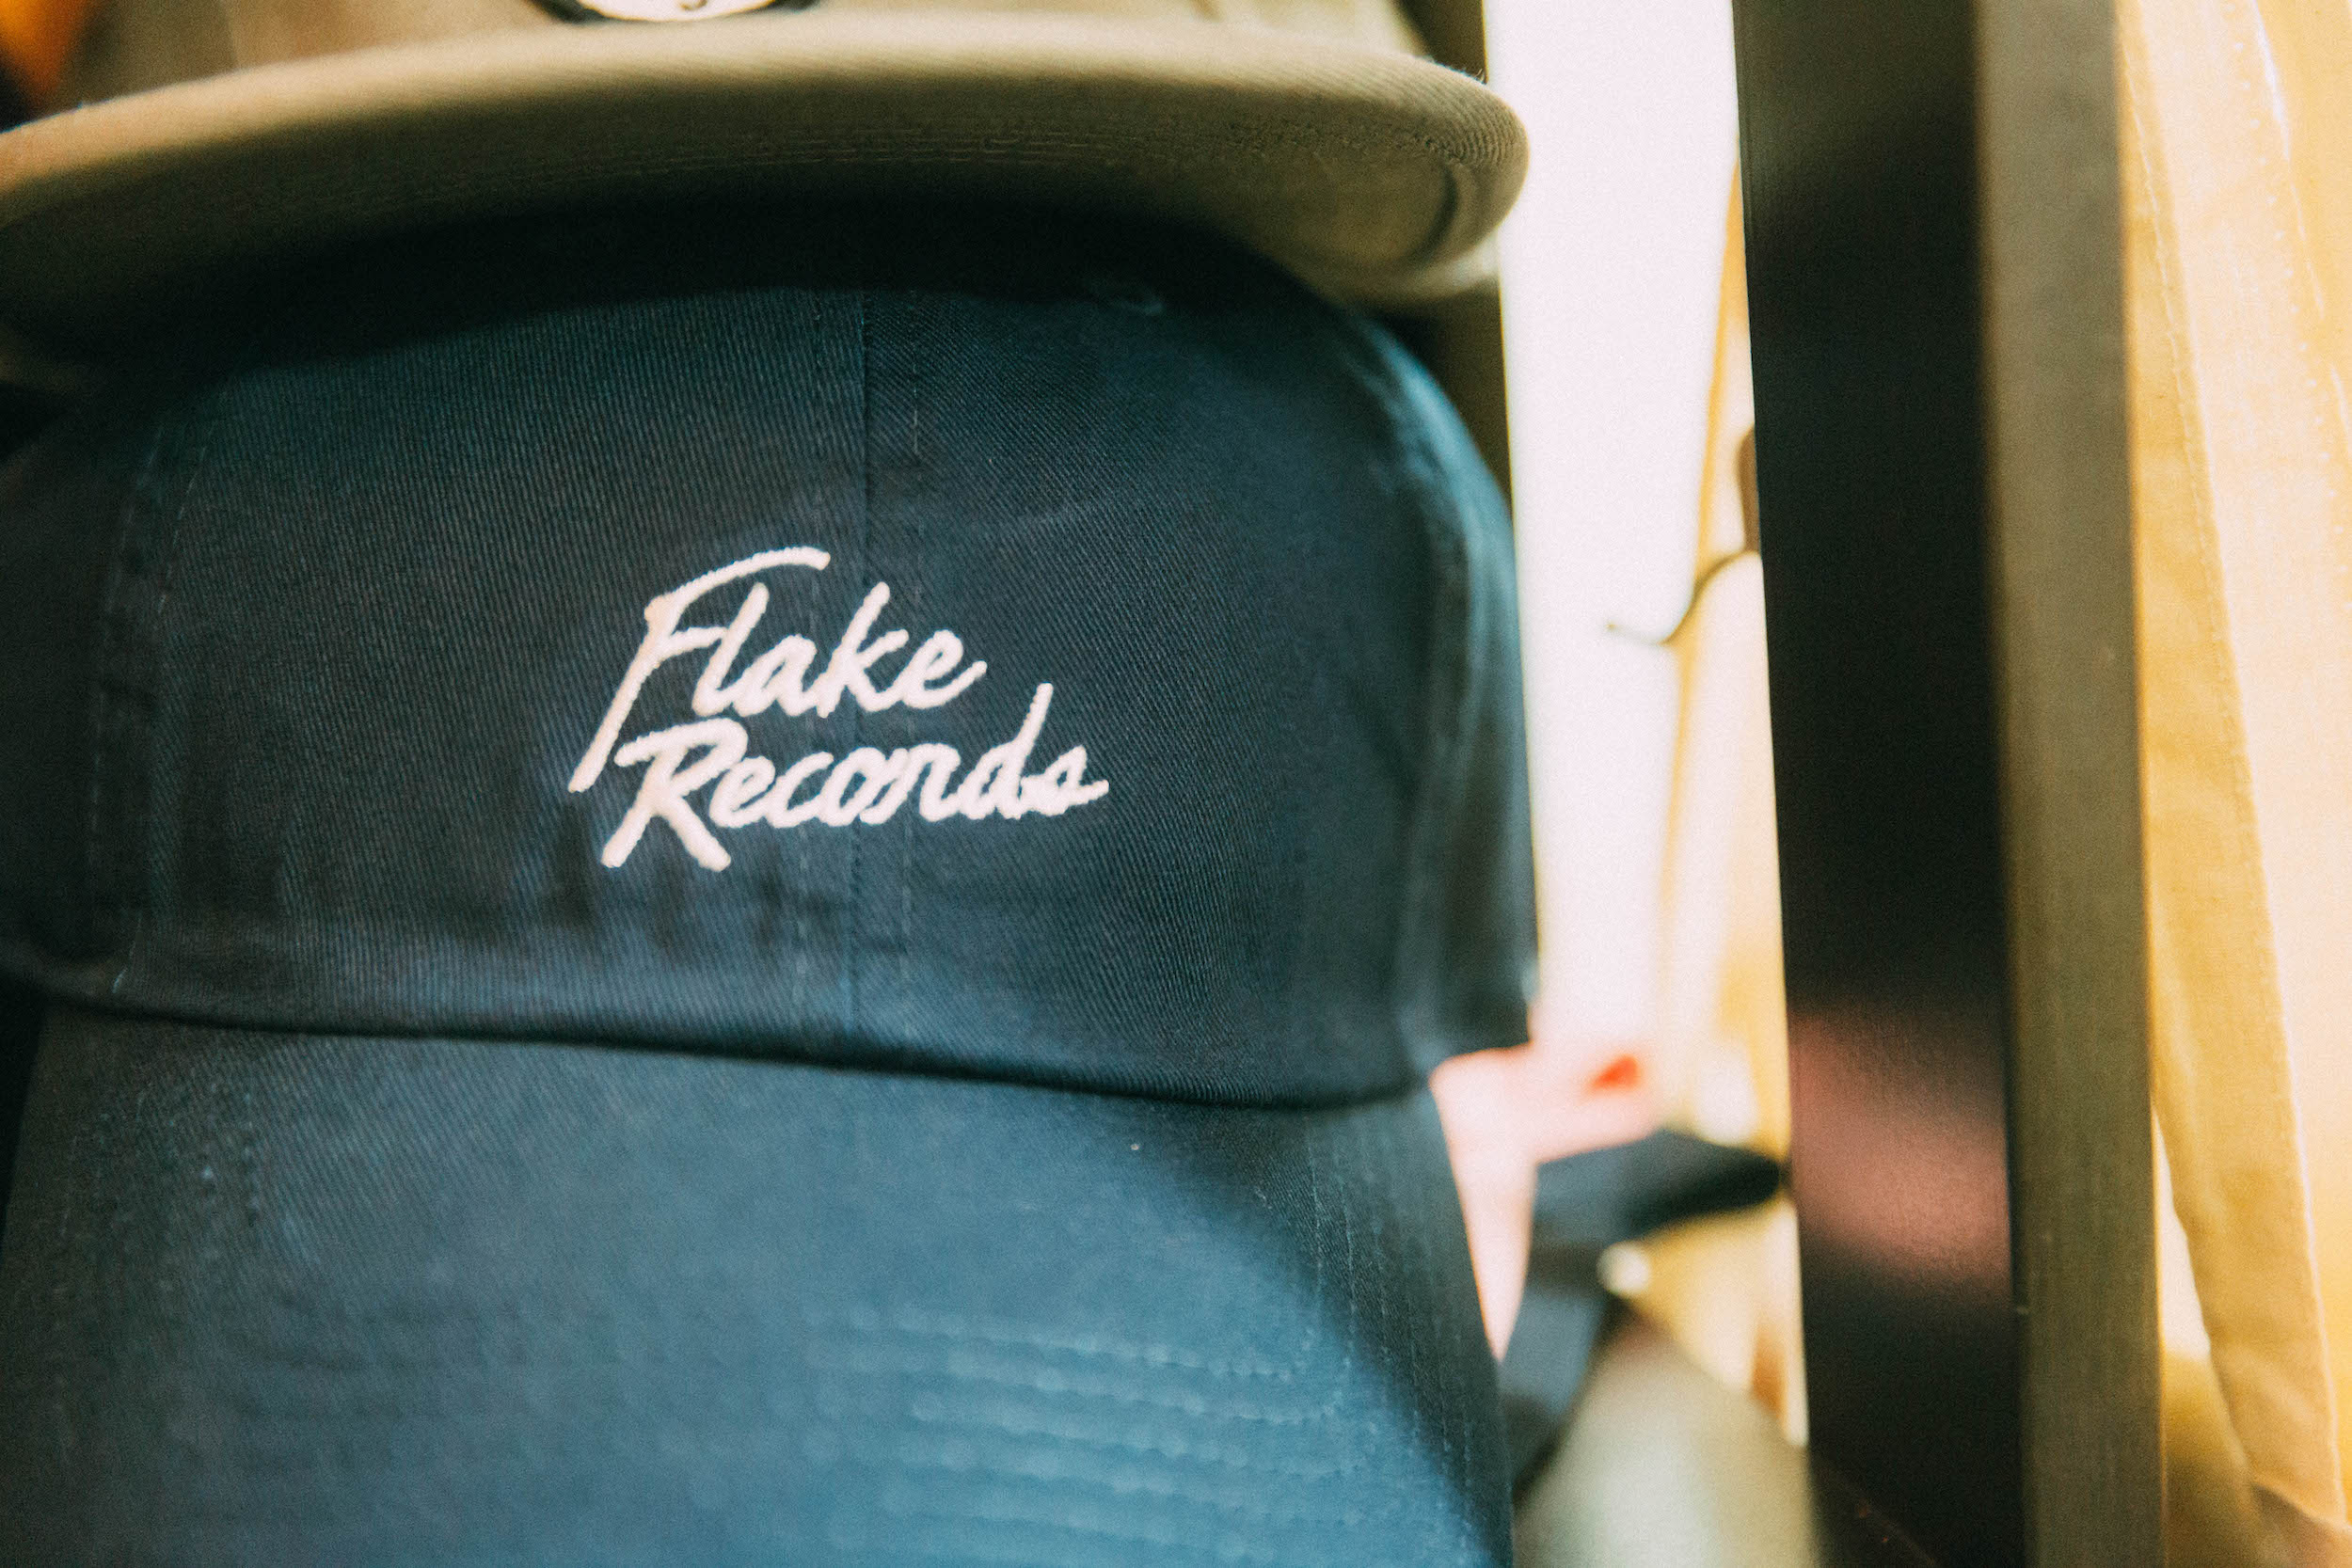 Get To Know Vol.1 FLAKE RECORDS gettoknow-vol1-flake-records-6